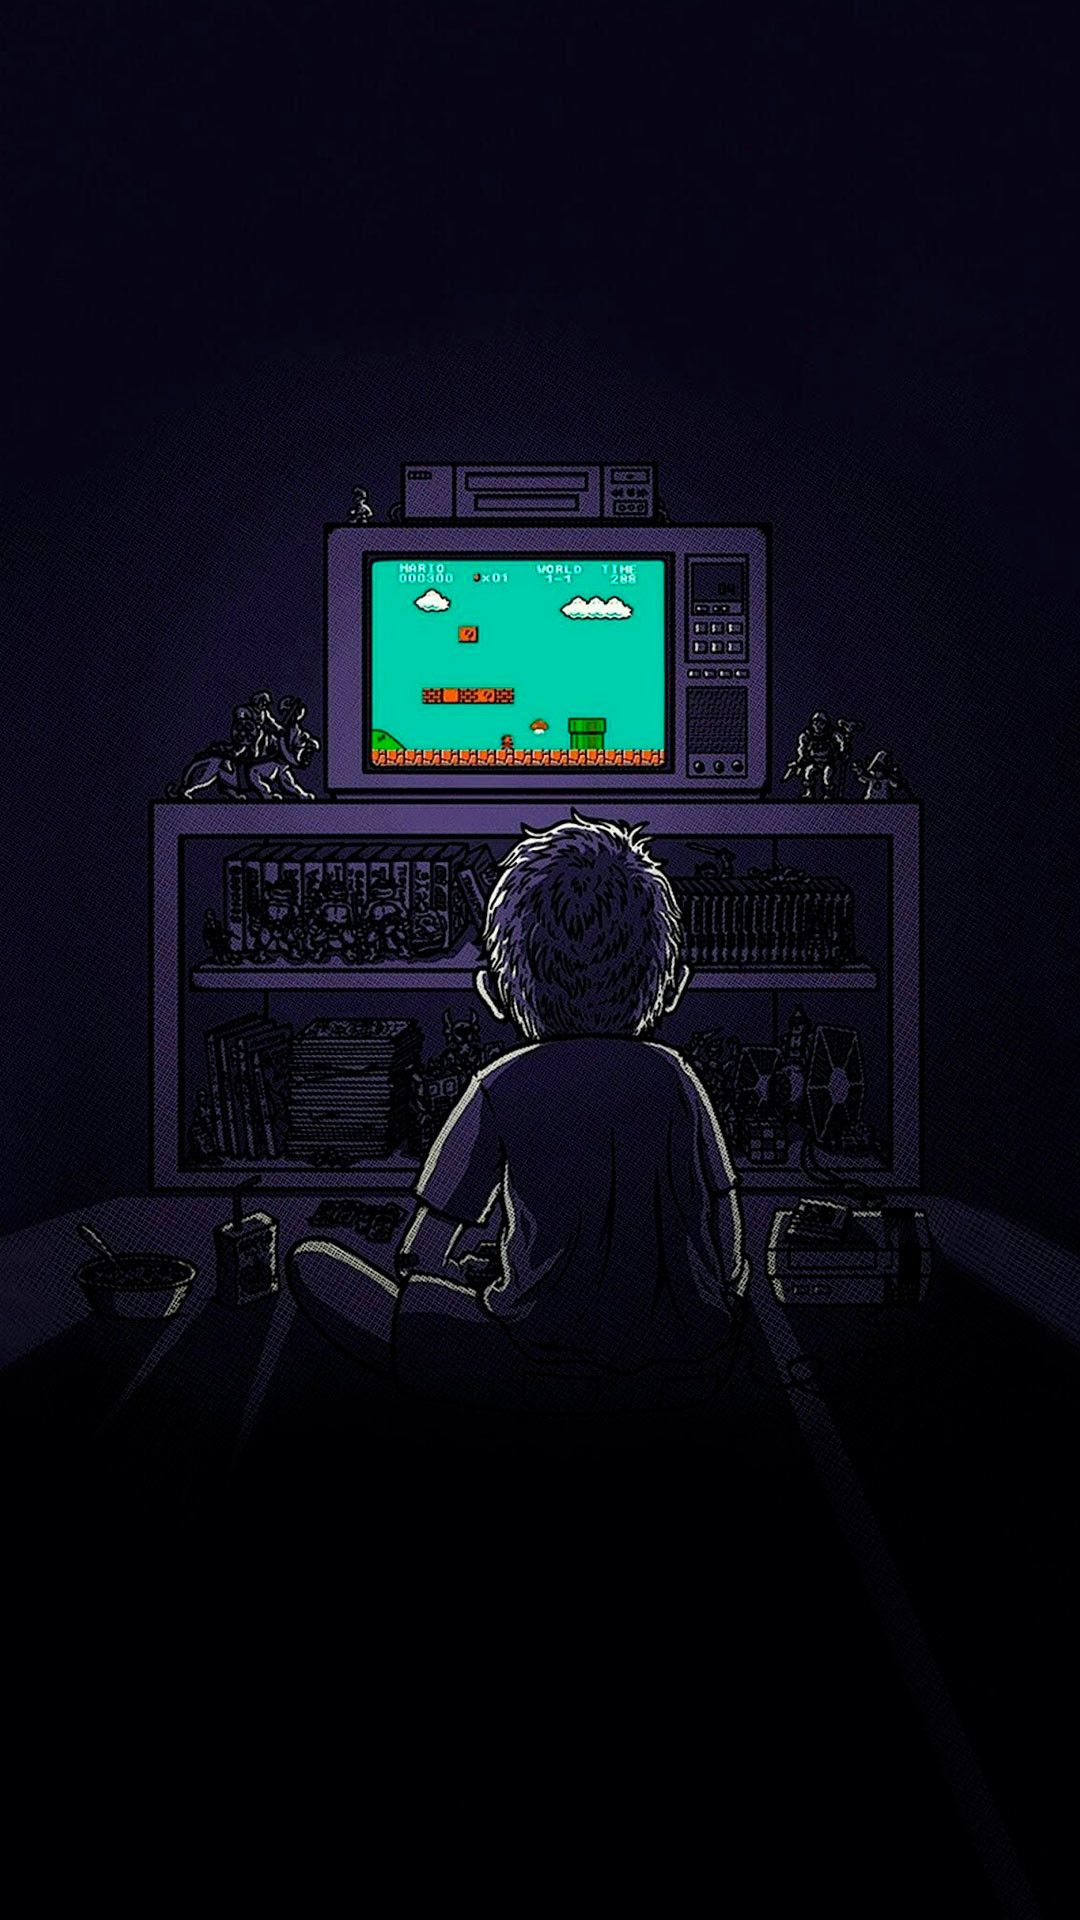 Minimalist Gaming Background Image In 2020 Game Wallpaper Iphone Art Wallpaper Iphone Pop Art Wallpaper